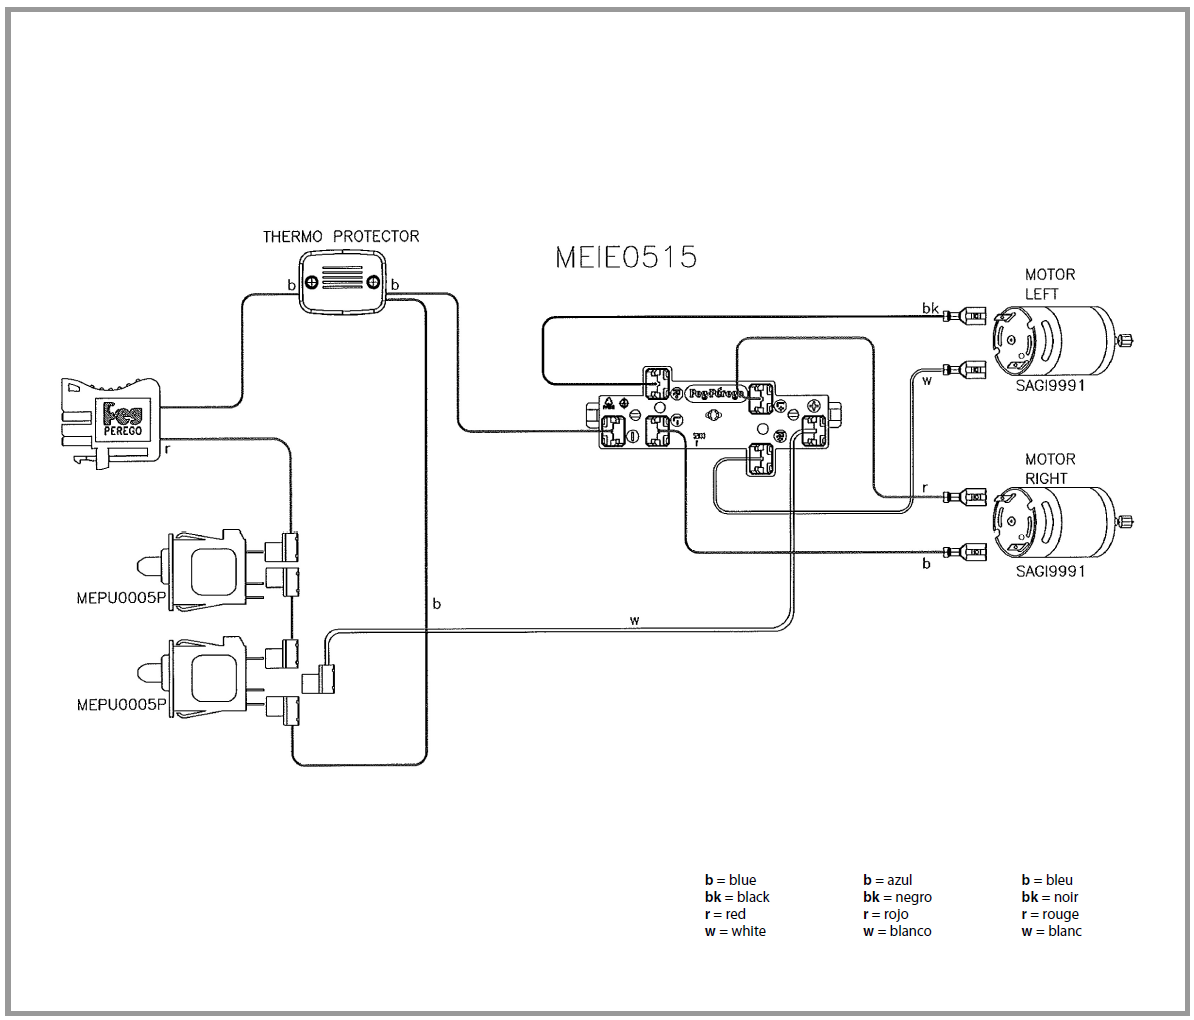 Polaris Sportsman 800 Efi Wiring Diagram. Diagrams. Wiring